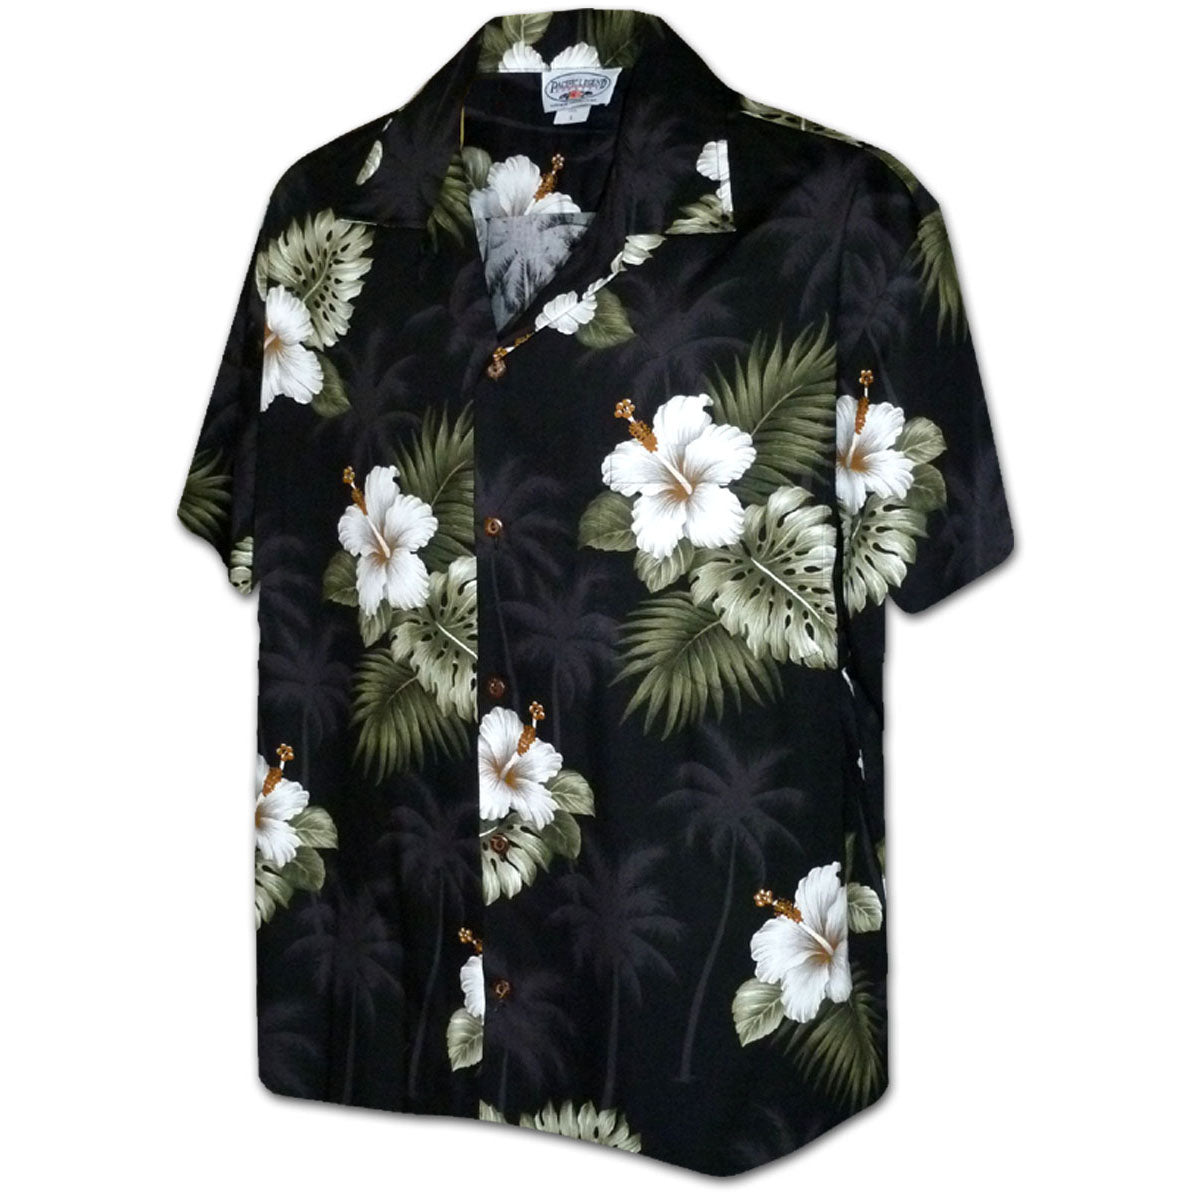 f9b040b7 Kilauea Black Men's Hawaiian Shirt - AlohaFunWear.com